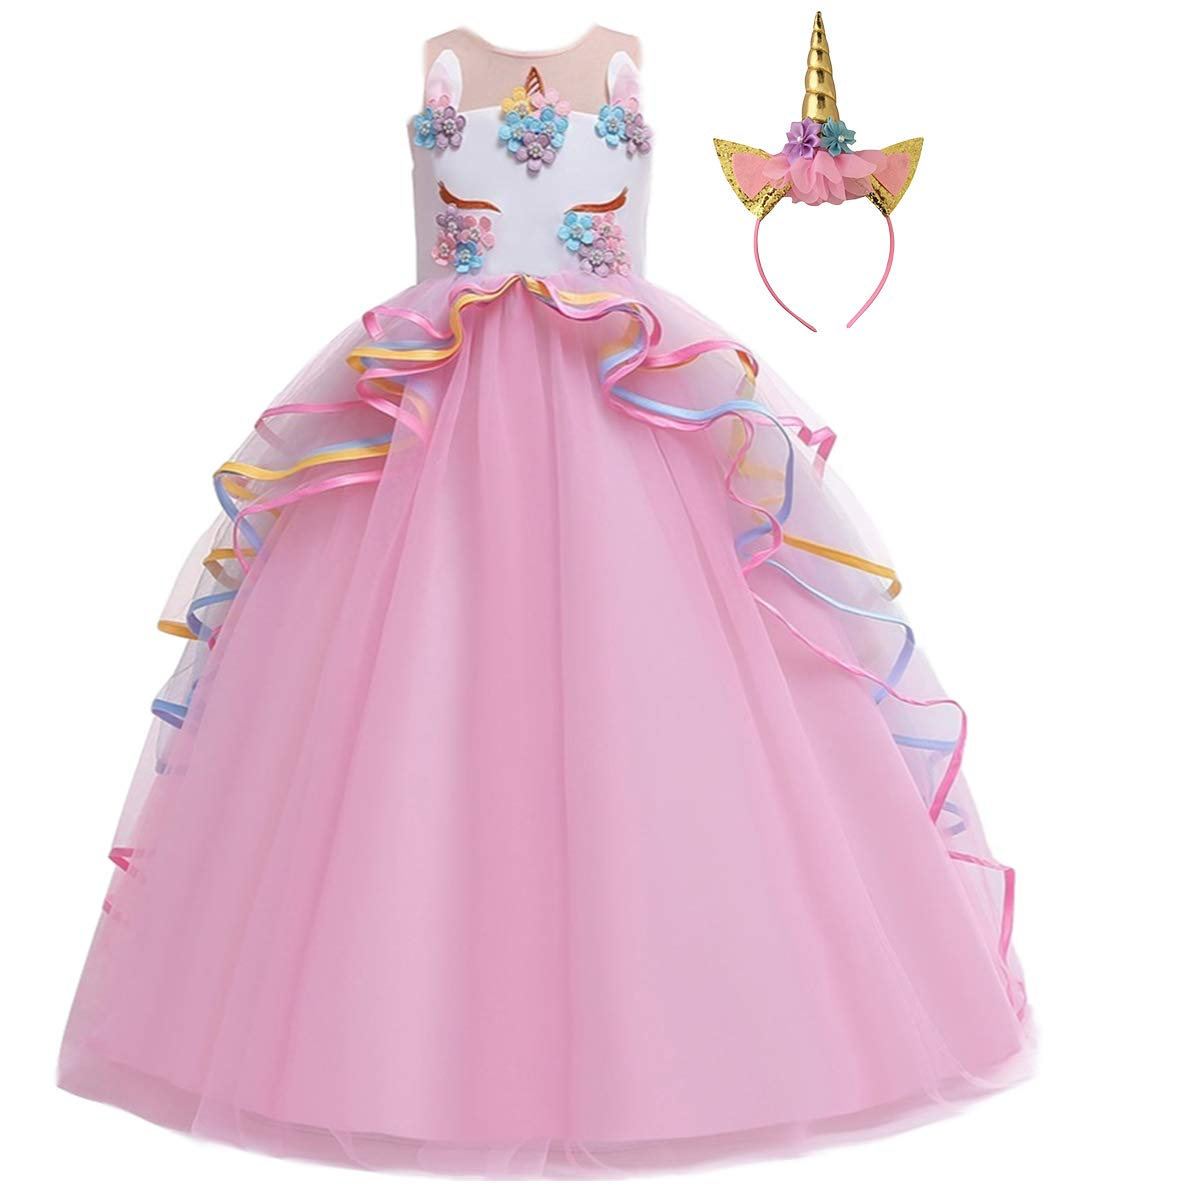 Girls Precious Pink Princess Fancy Dress Costume Kids Carnival Party Outfit